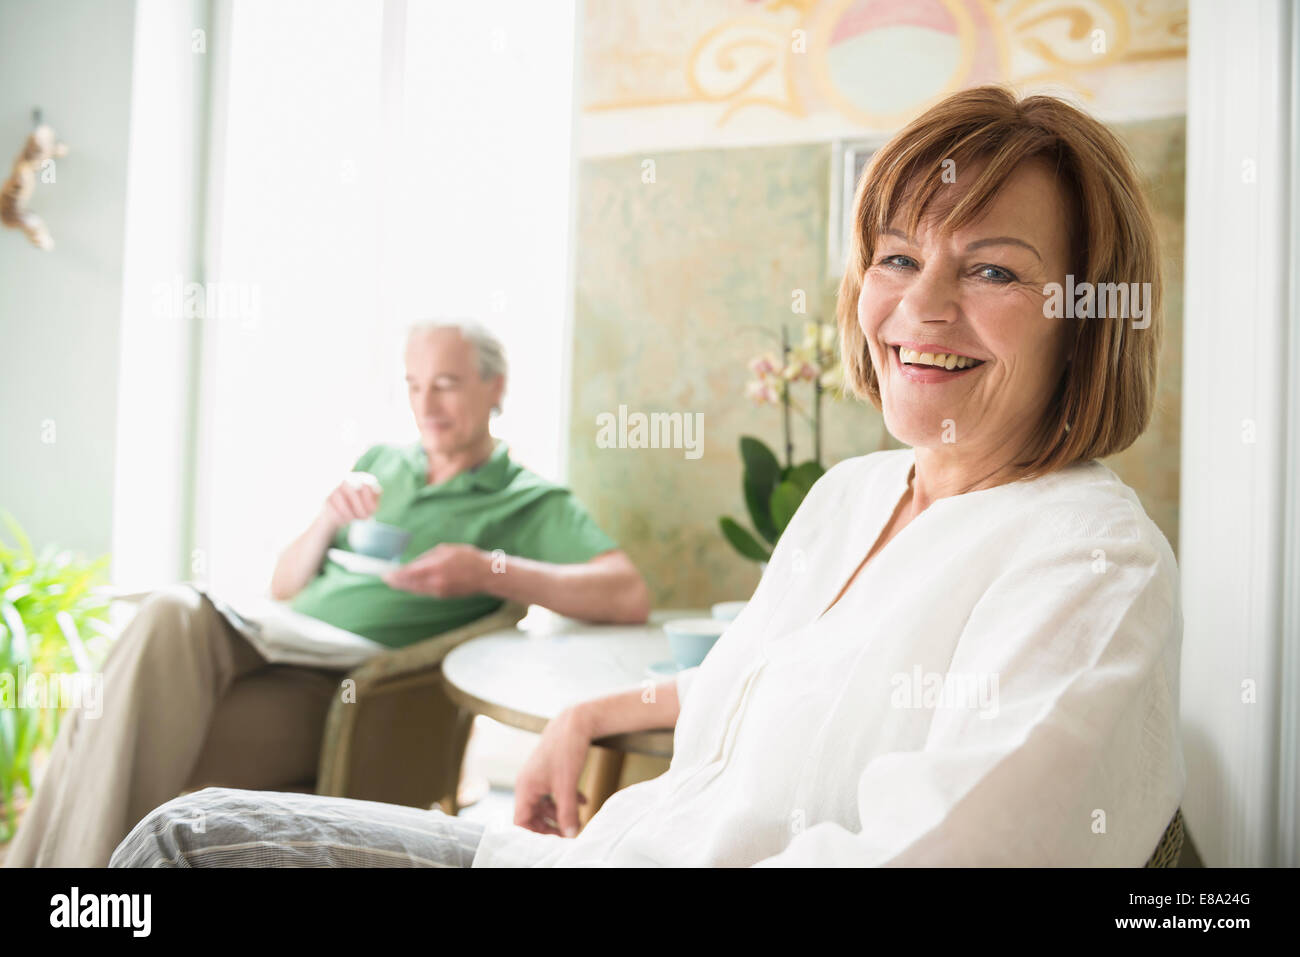 Portrait of senior woman smiling while mature man in background - Stock Image